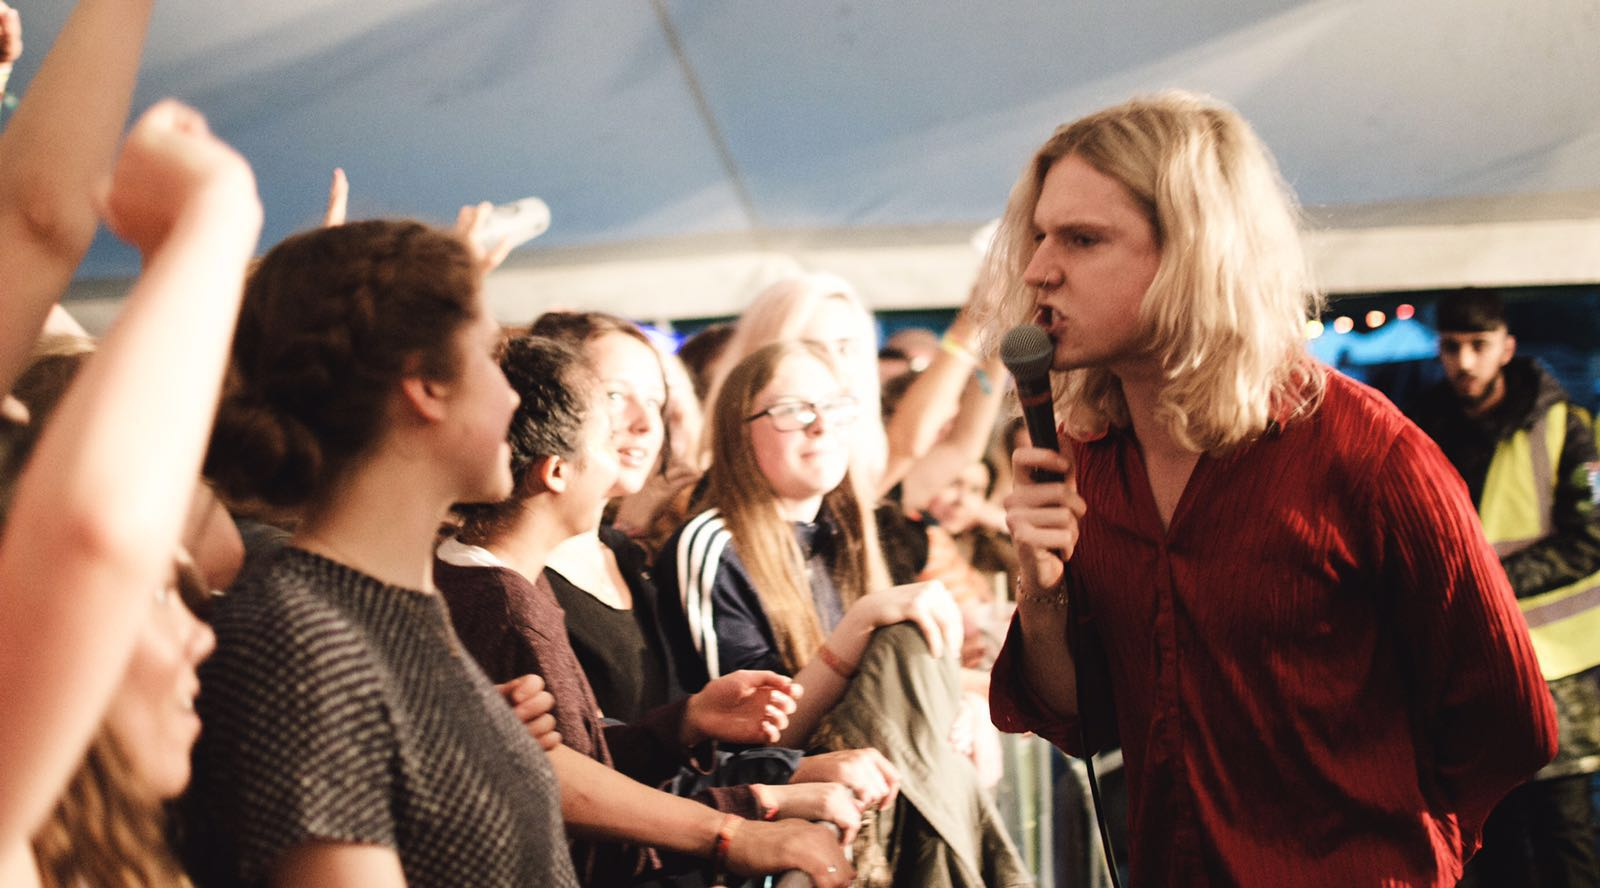 Sundara Karma signing into crowd